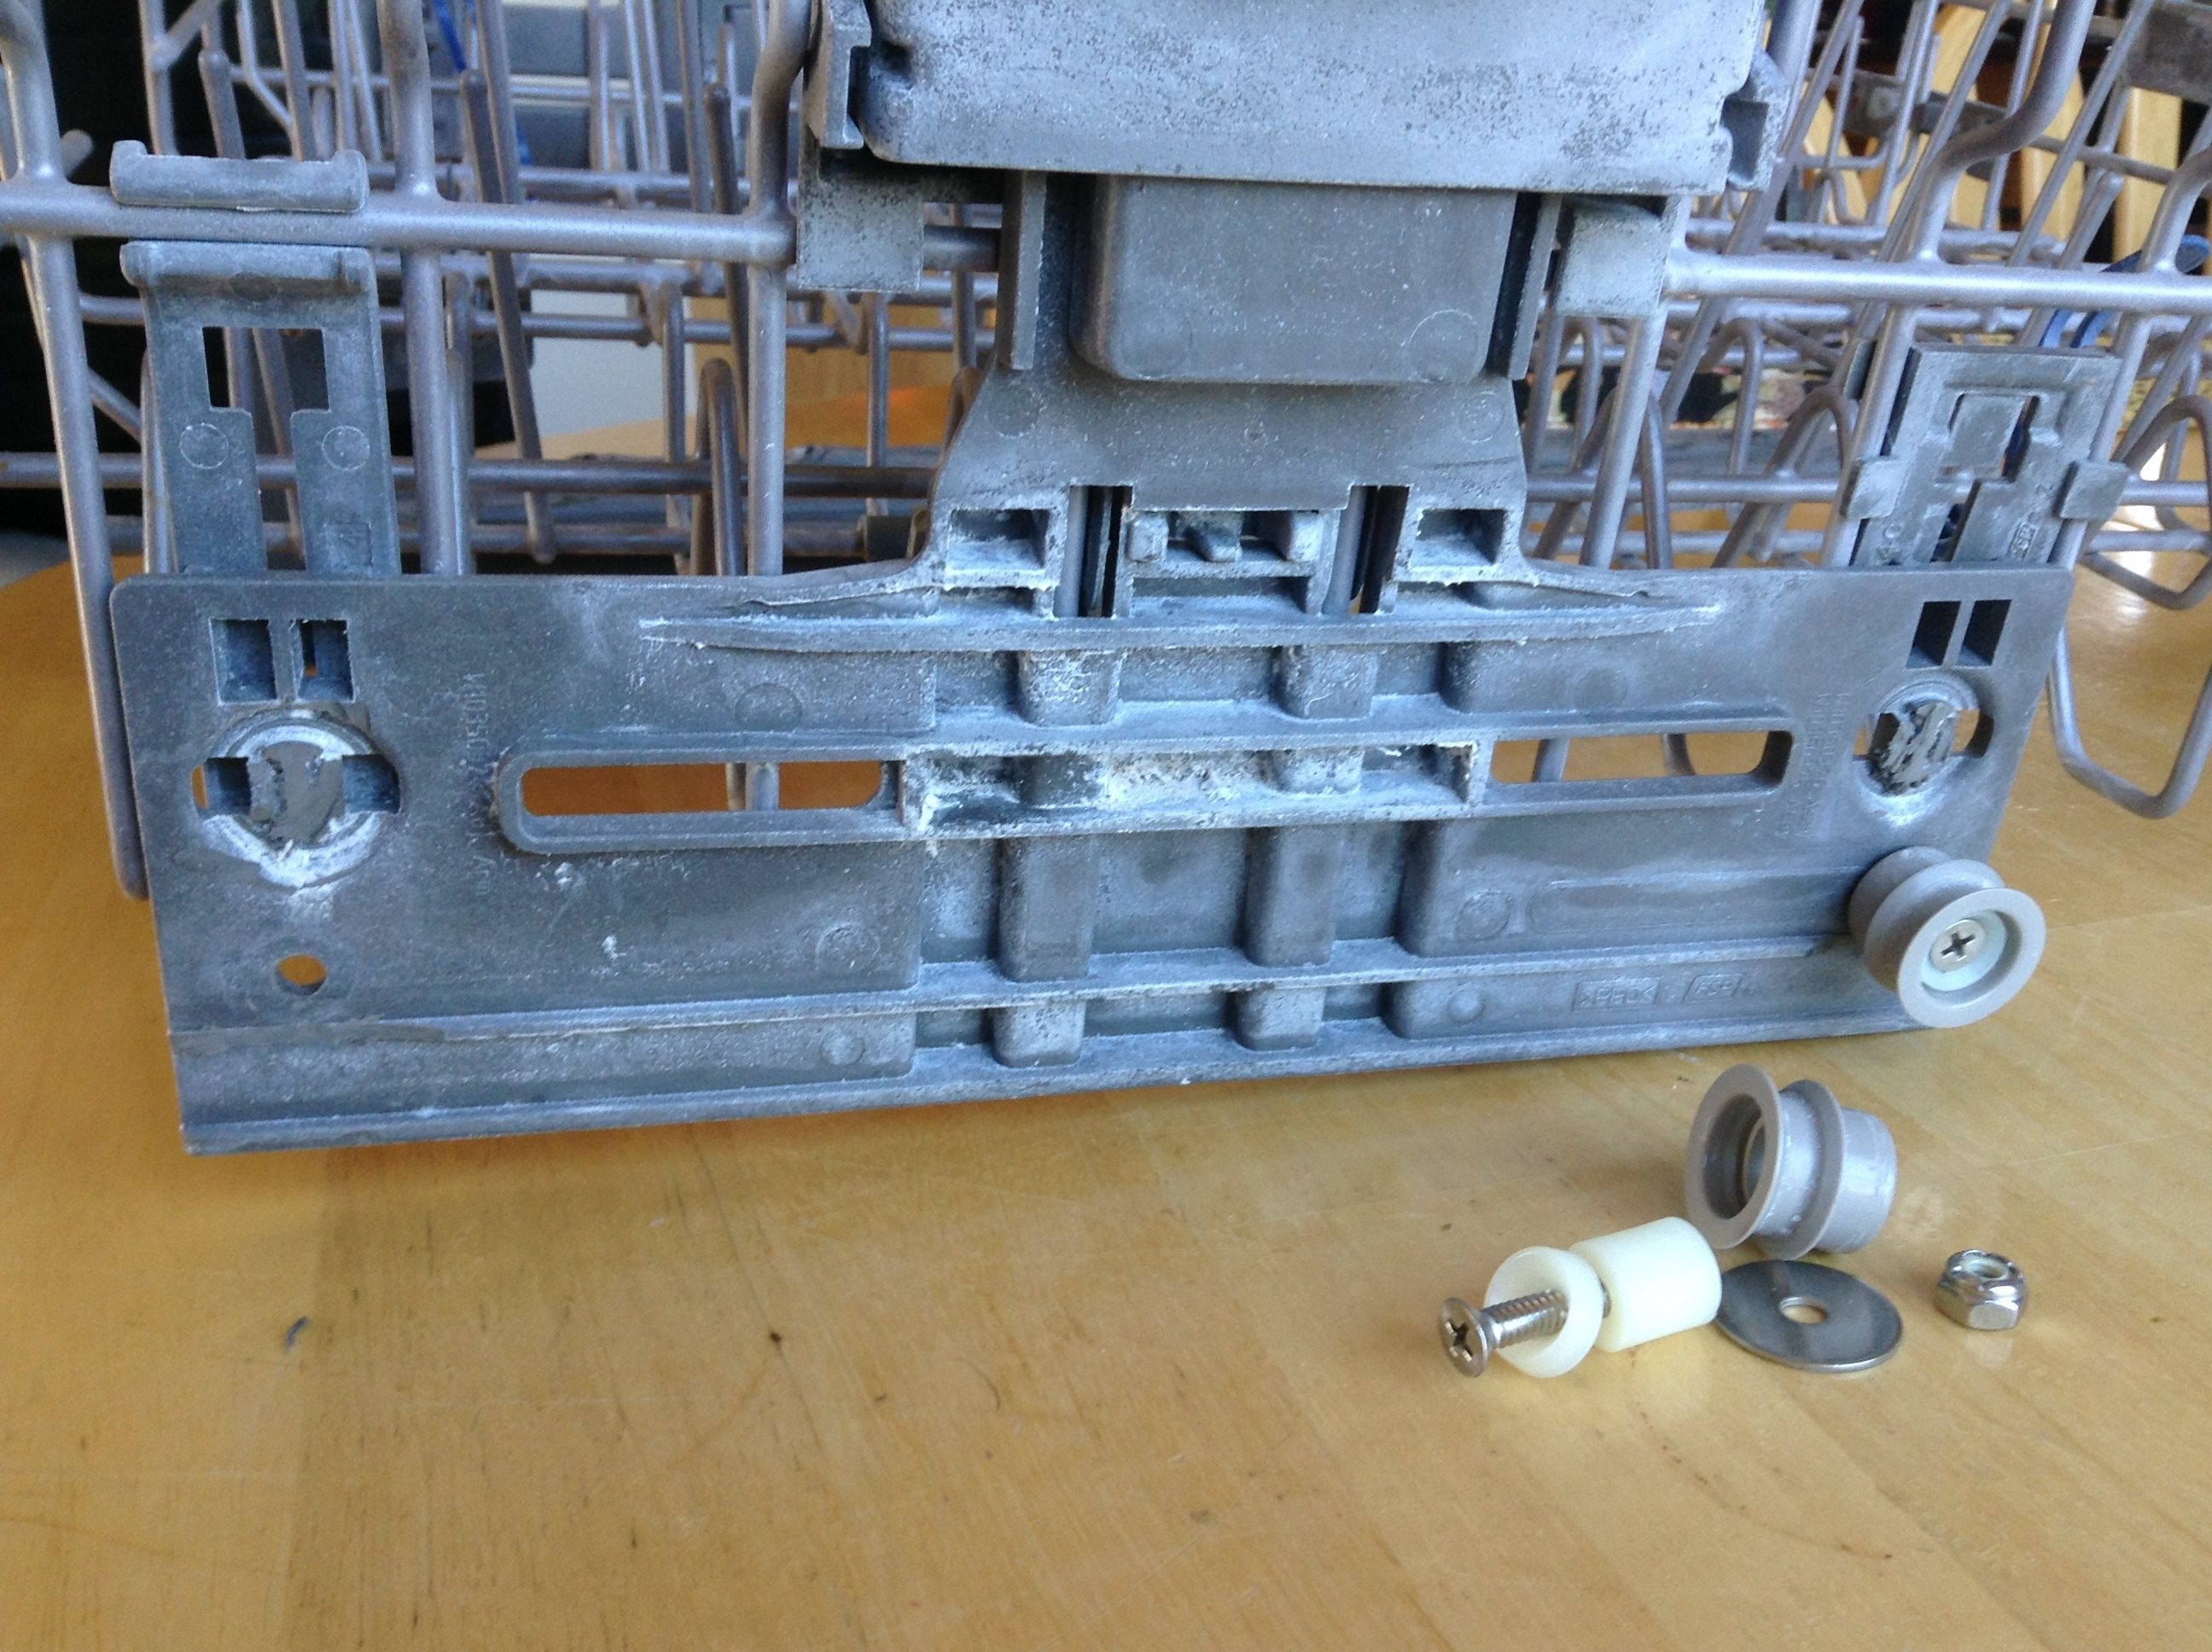 Kitchenaid Dishwasher Racks